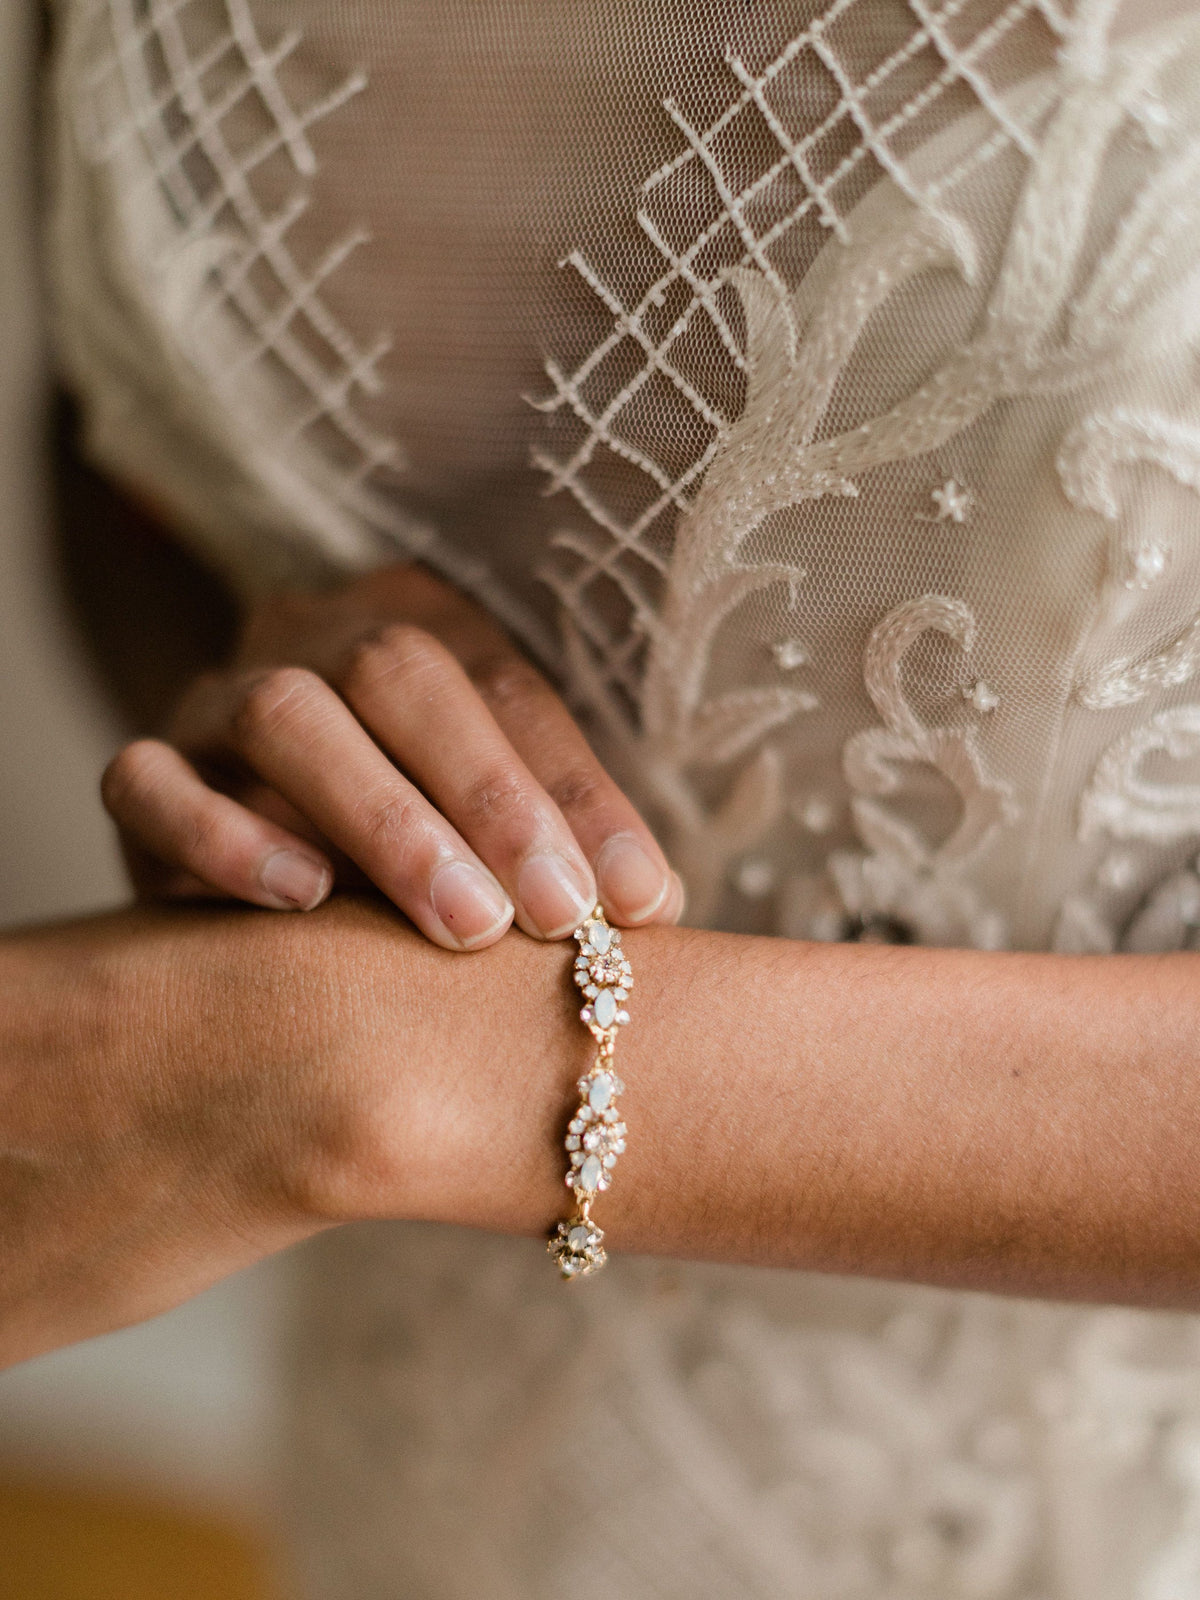 Rent Wedding Jewelry - Golden Filigree Bracelet - Happily Ever Borrowed